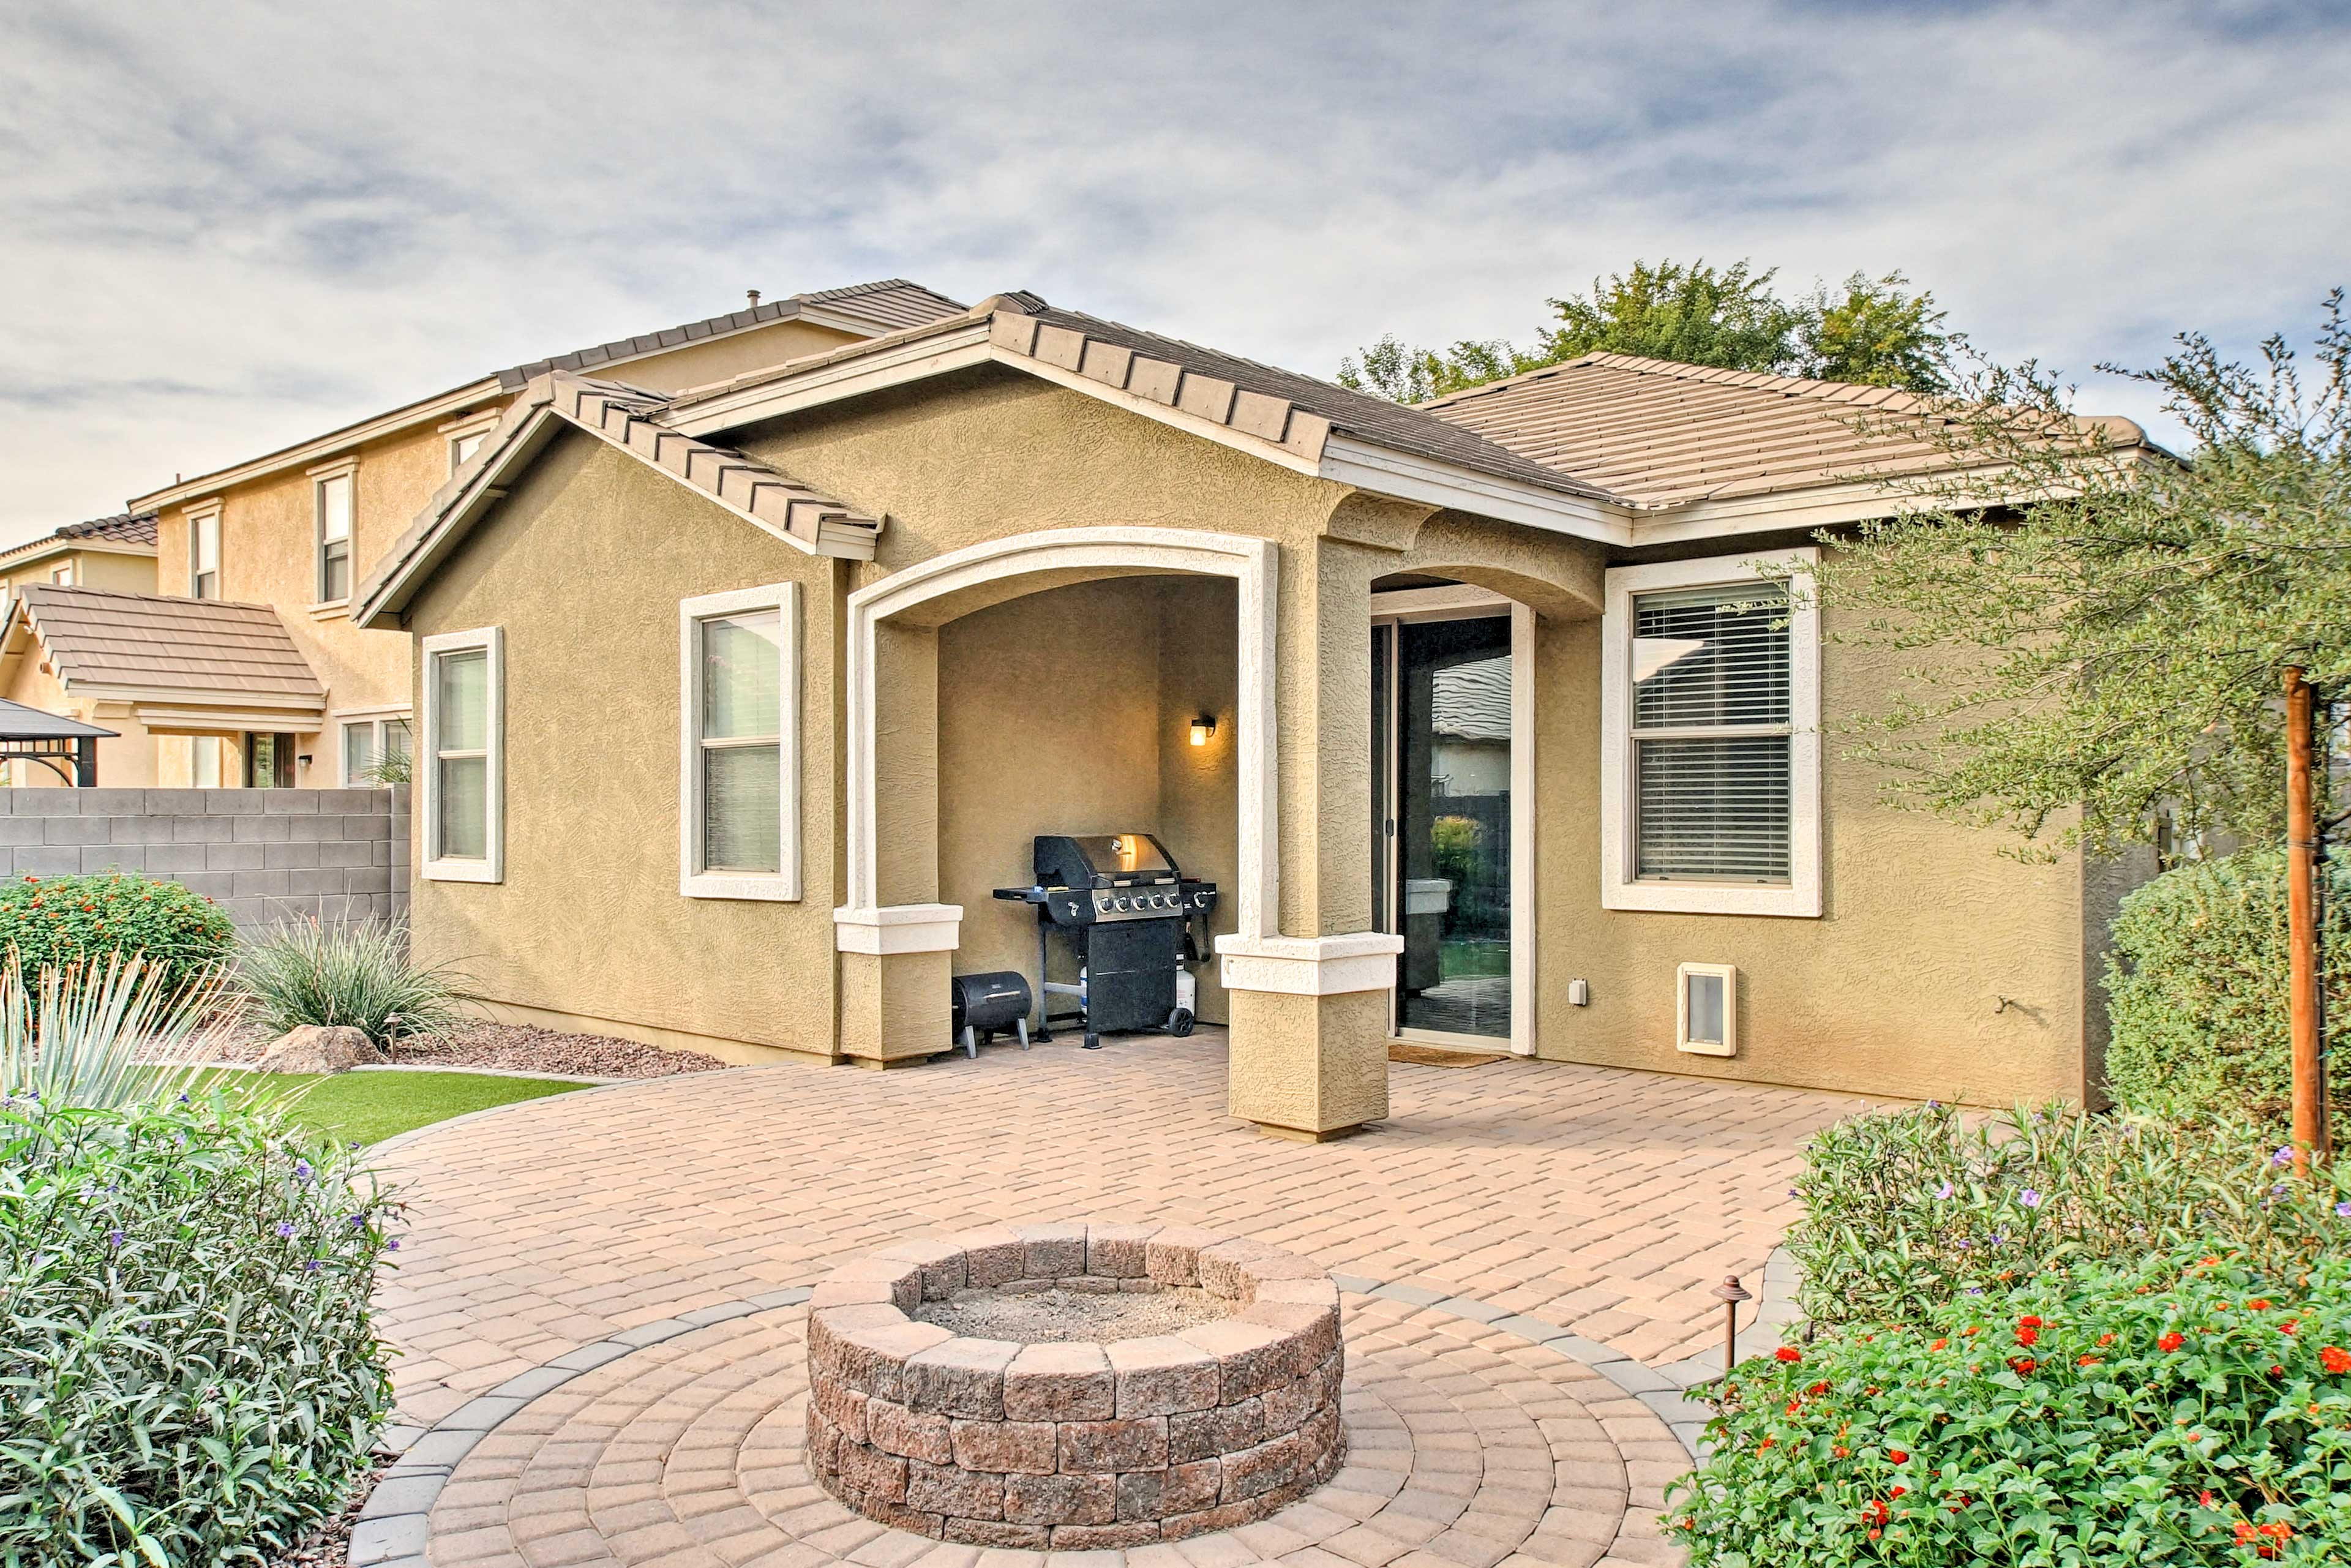 Relax and recharge when you stay at this 2-bed, 2-bath vacation rental house!